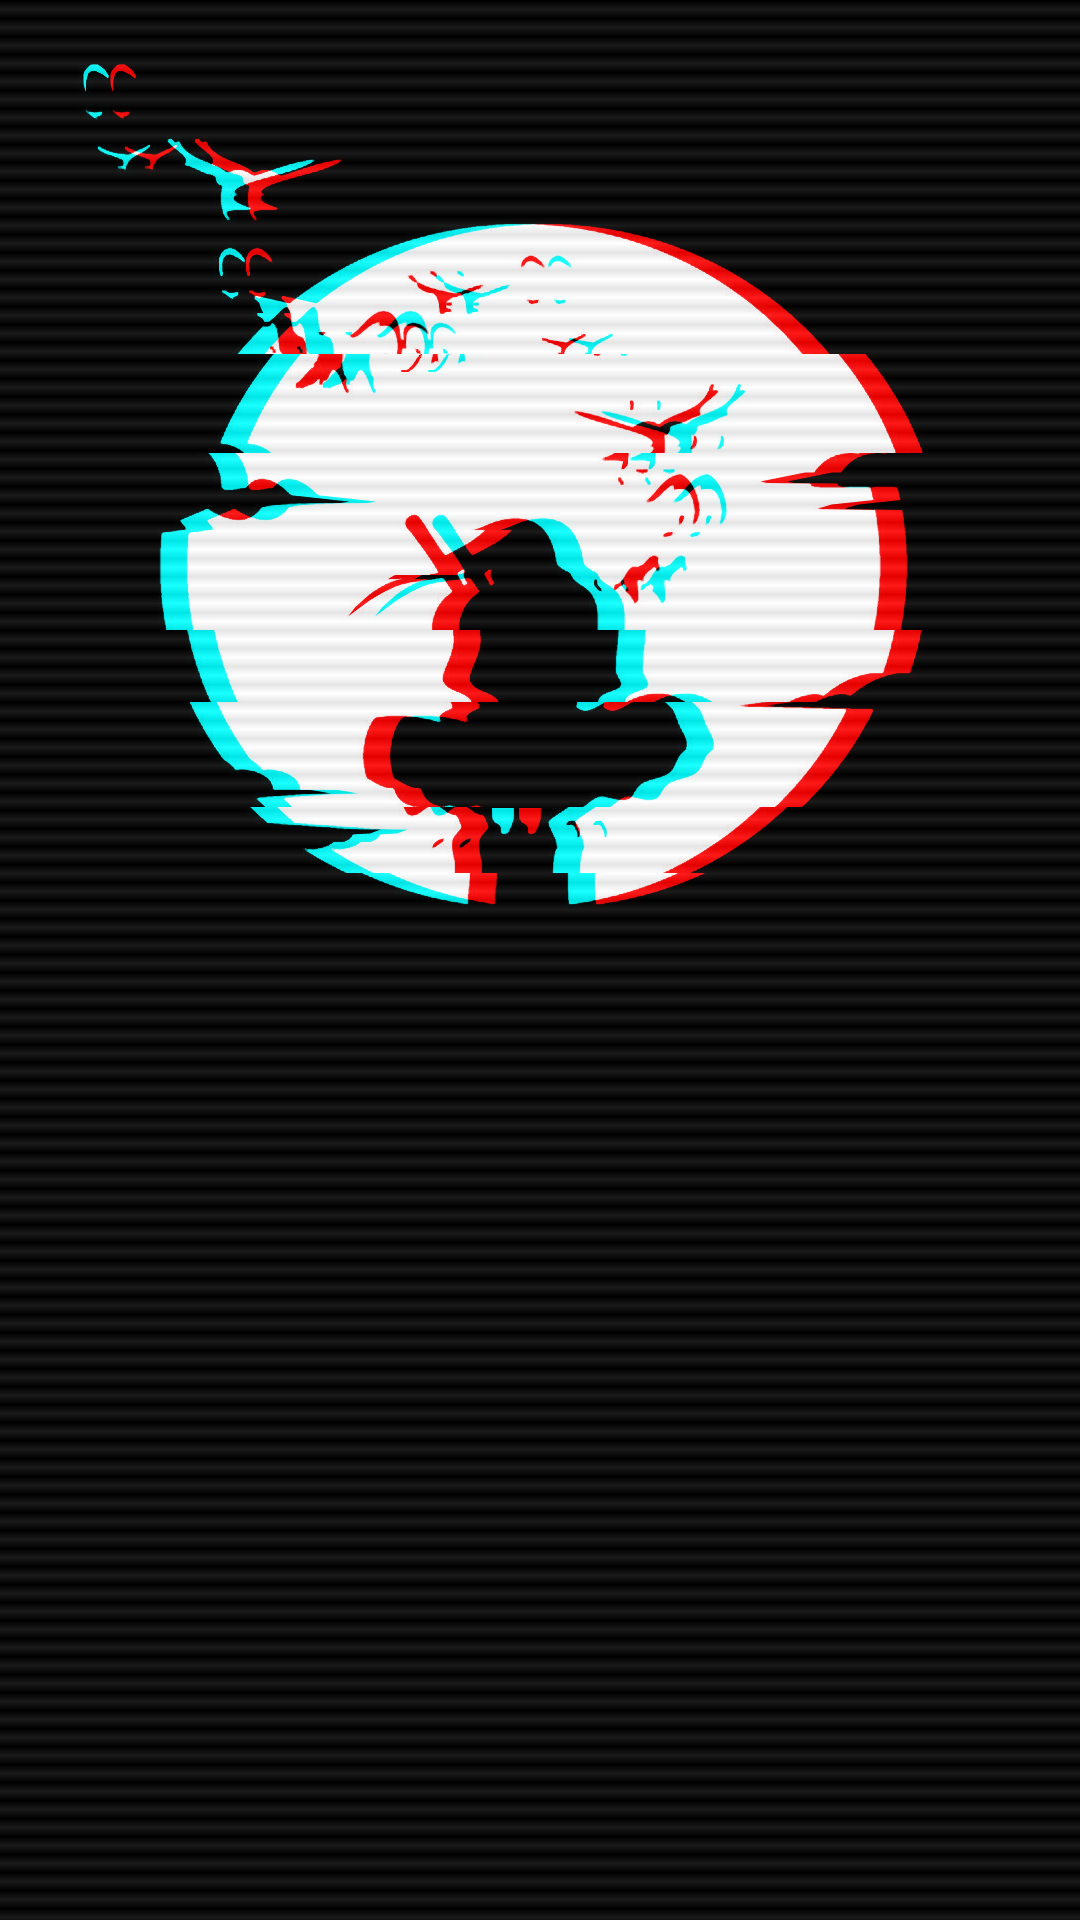 naruto itachi glitch wallpaper phone in 2020 Glitch